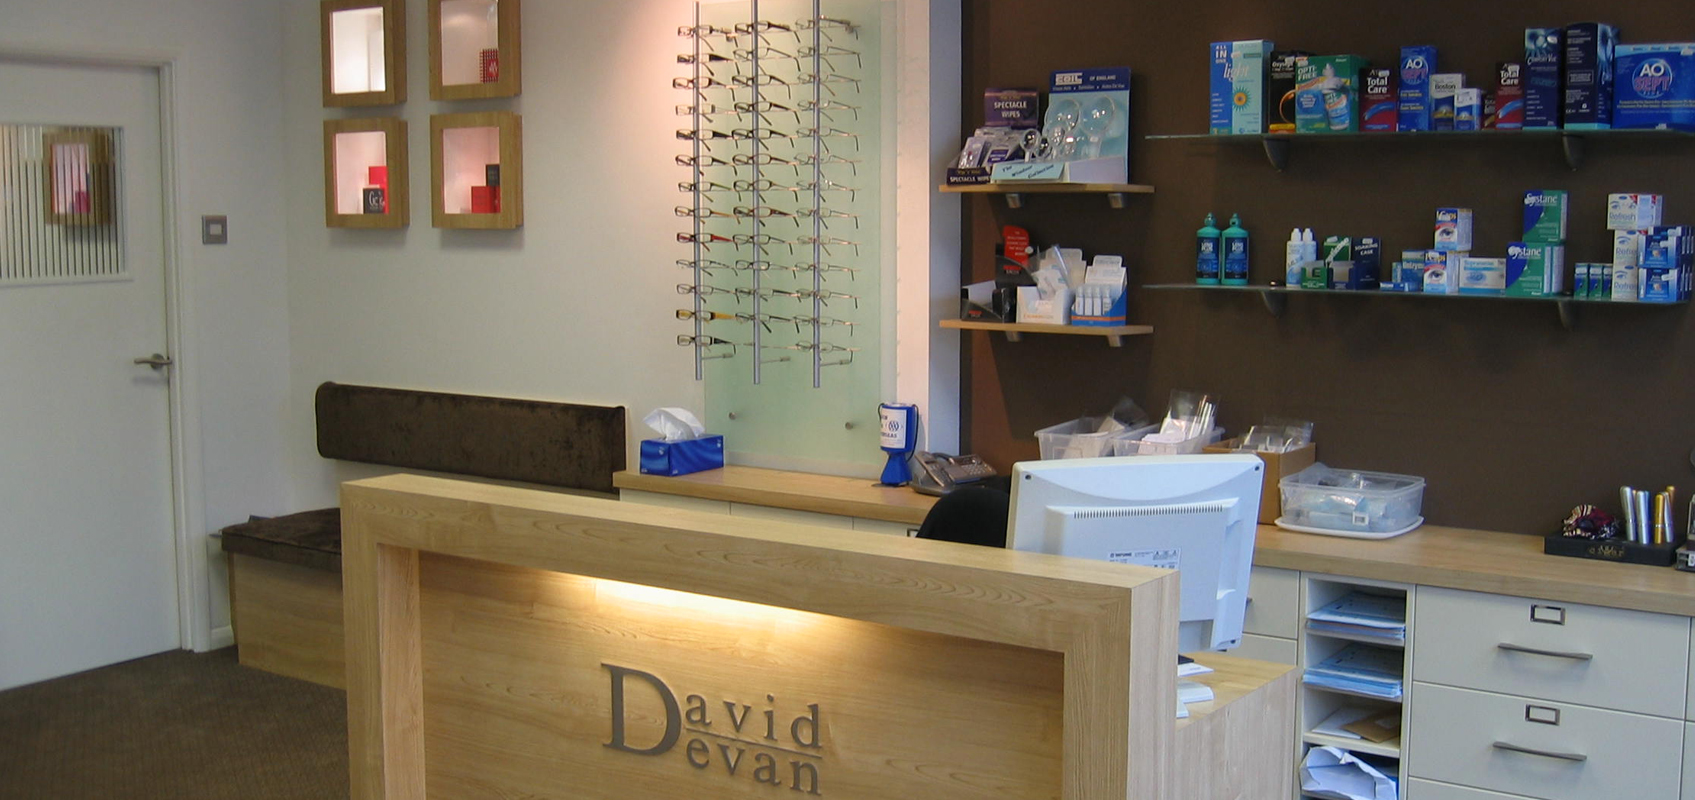 David Devan Opticiains